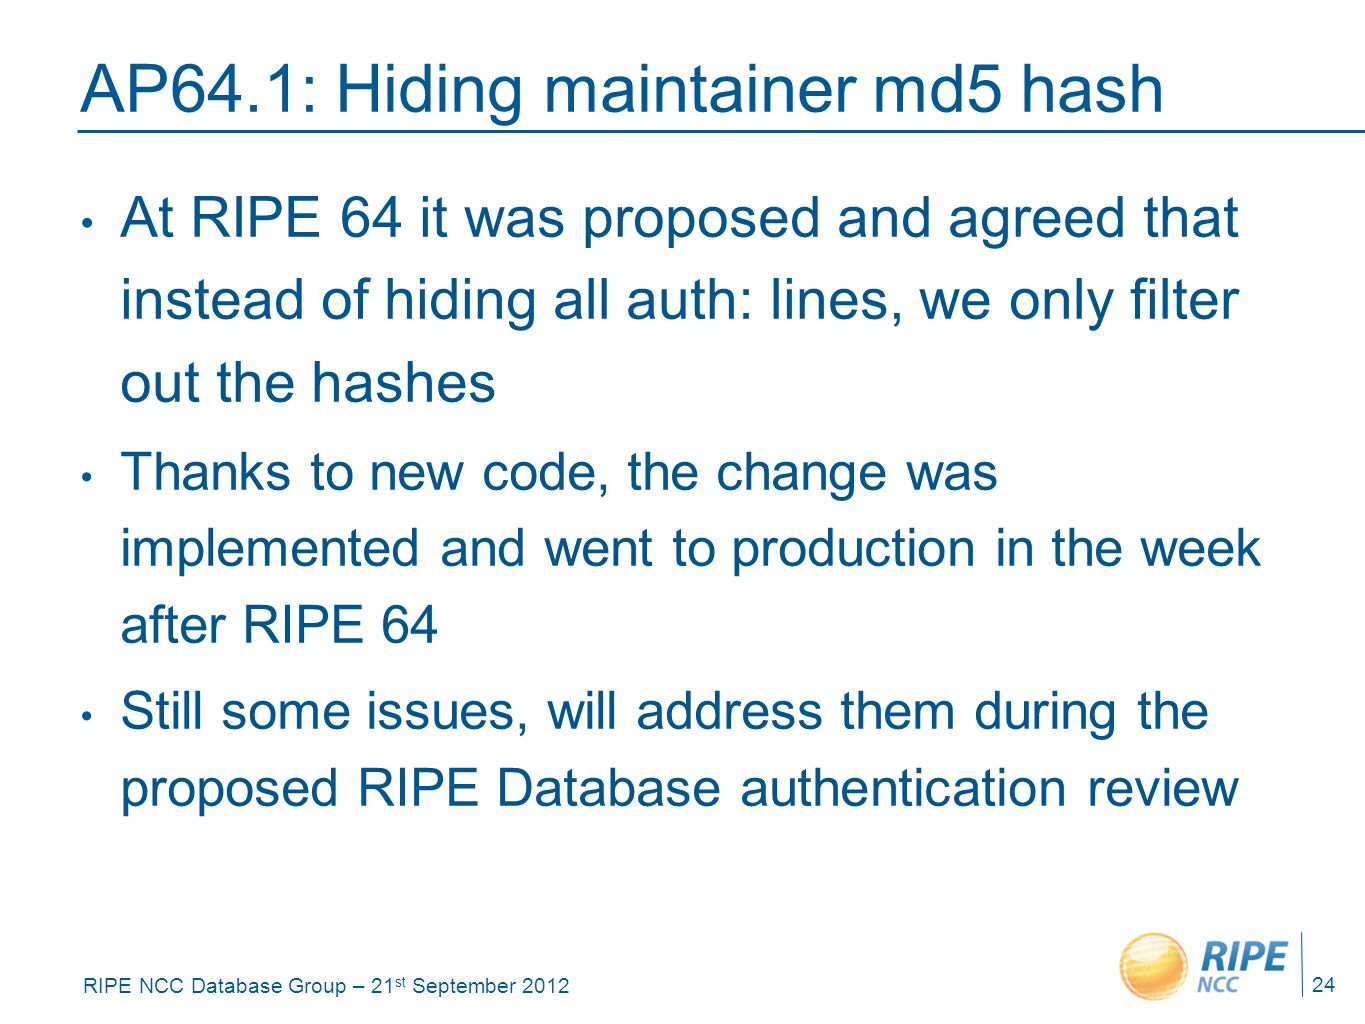 RIPE NCC Database Group – 21 st September 2012 AP64.1: Hiding maintainer md5 hash At RIPE 64 it was proposed and agreed that instead of hiding all auth: lines, we only filter out the hashes Thanks to new code, the change was implemented and went to production in the week after RIPE 64 Still some issues, will address them during the proposed RIPE Database authentication review 24